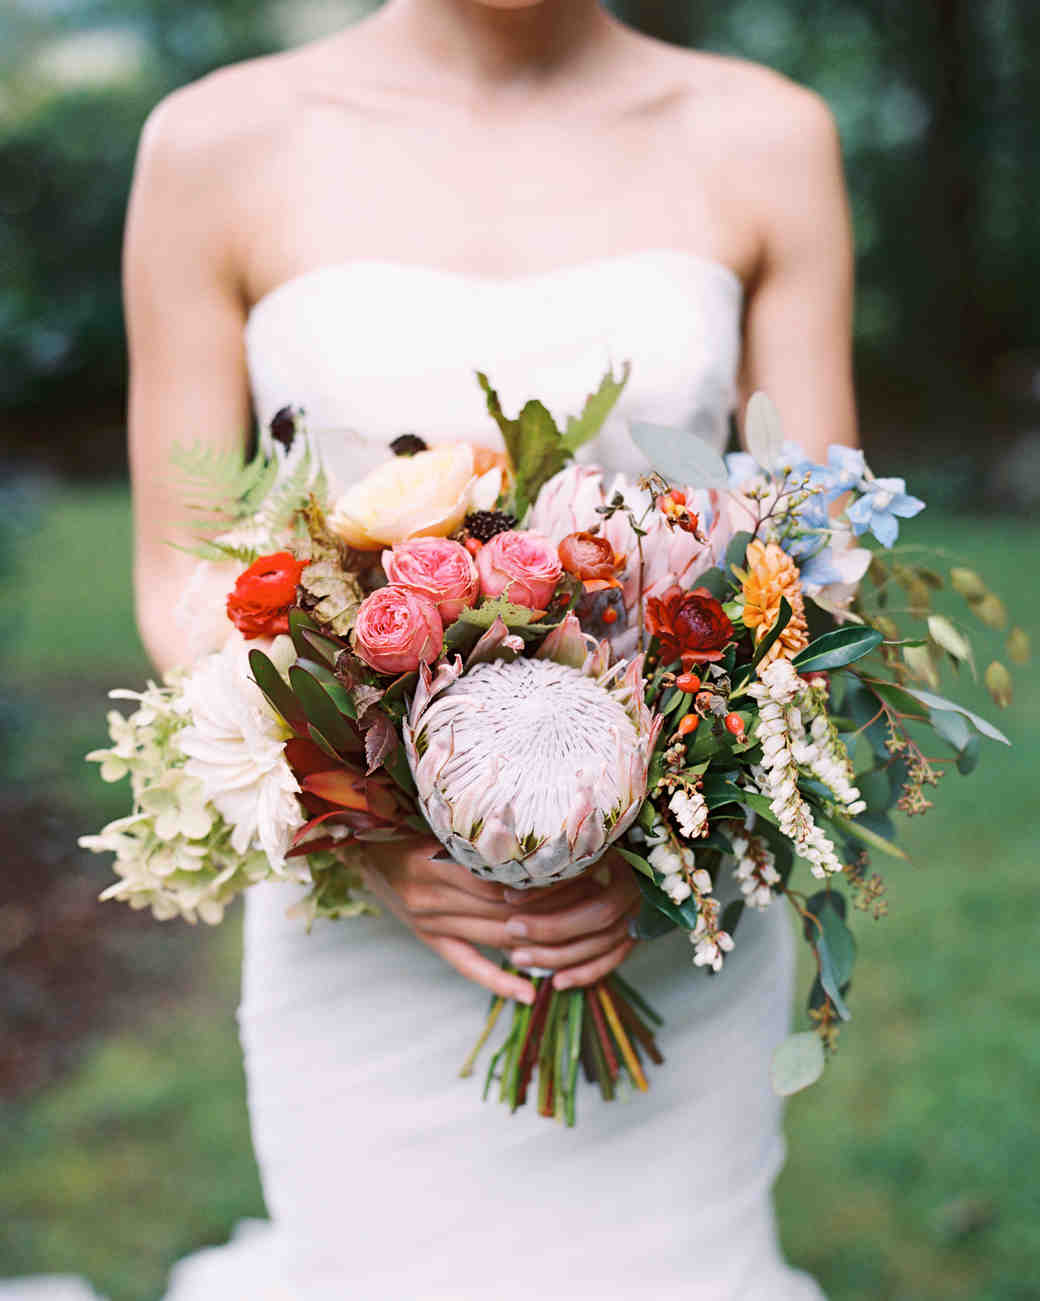 The 50 best wedding bouquets martha stewart weddings protea wedding bouquet izmirmasajfo